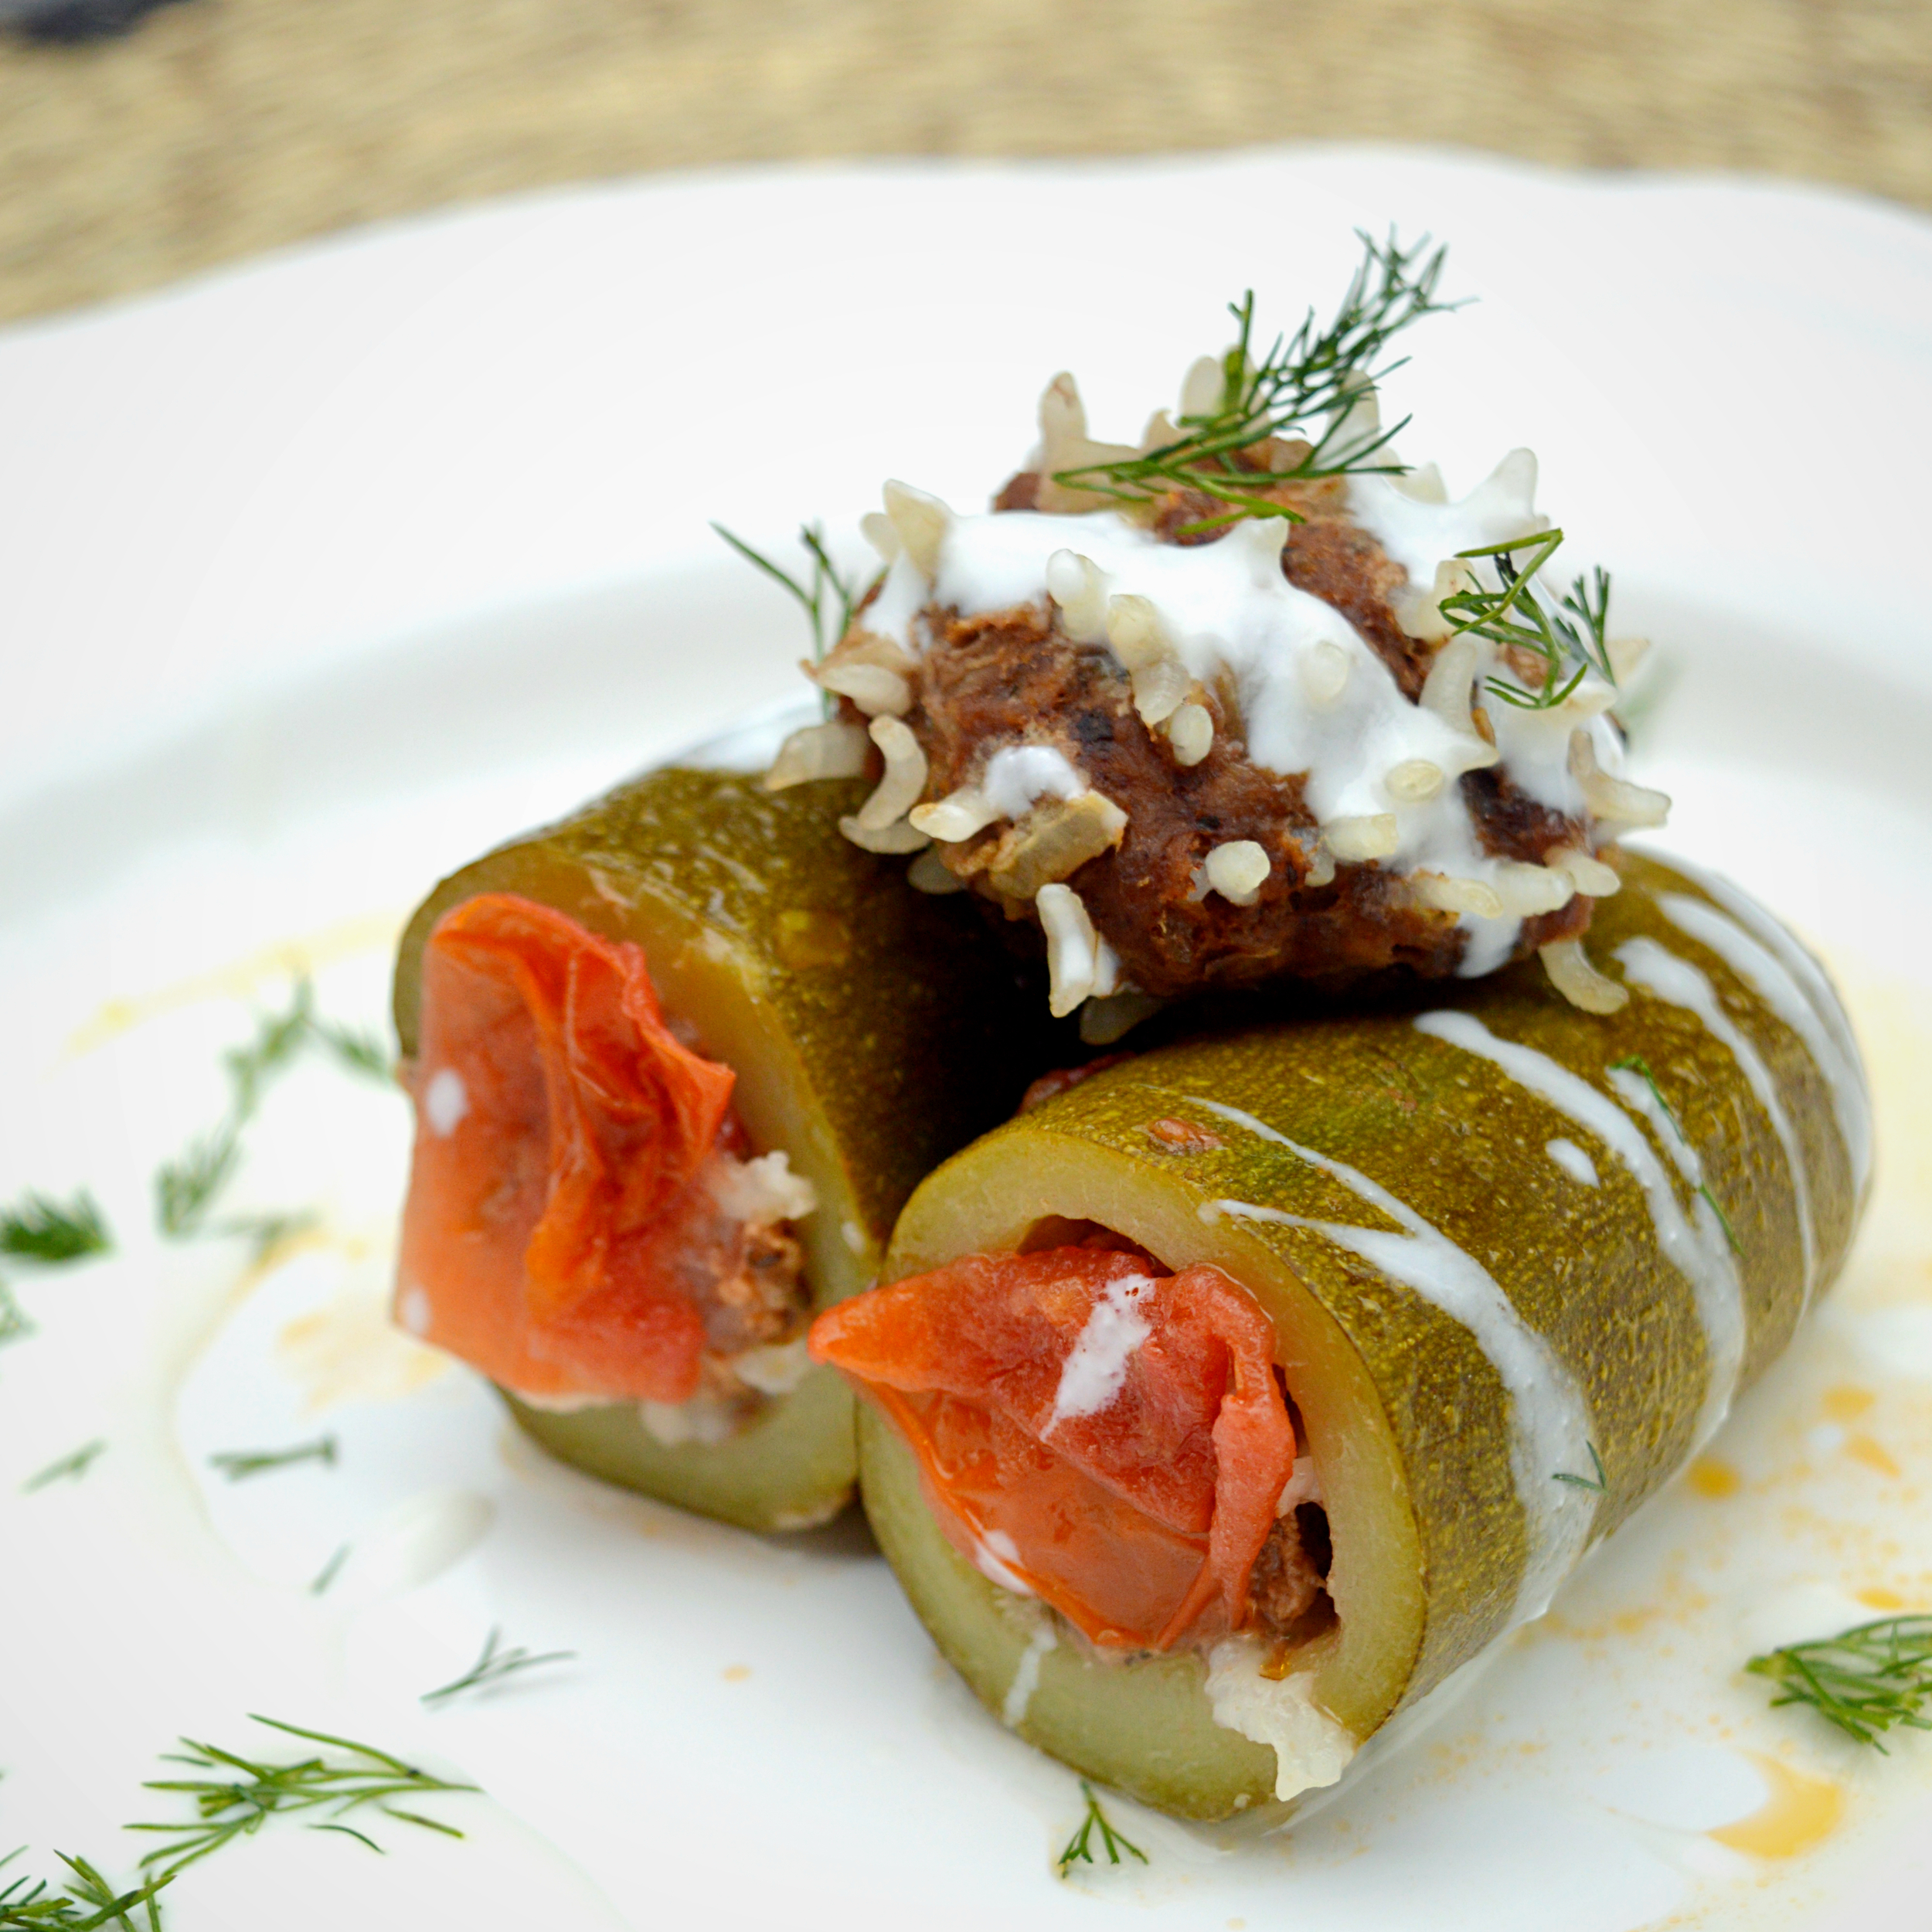 Ground beef stuffed zucchinies